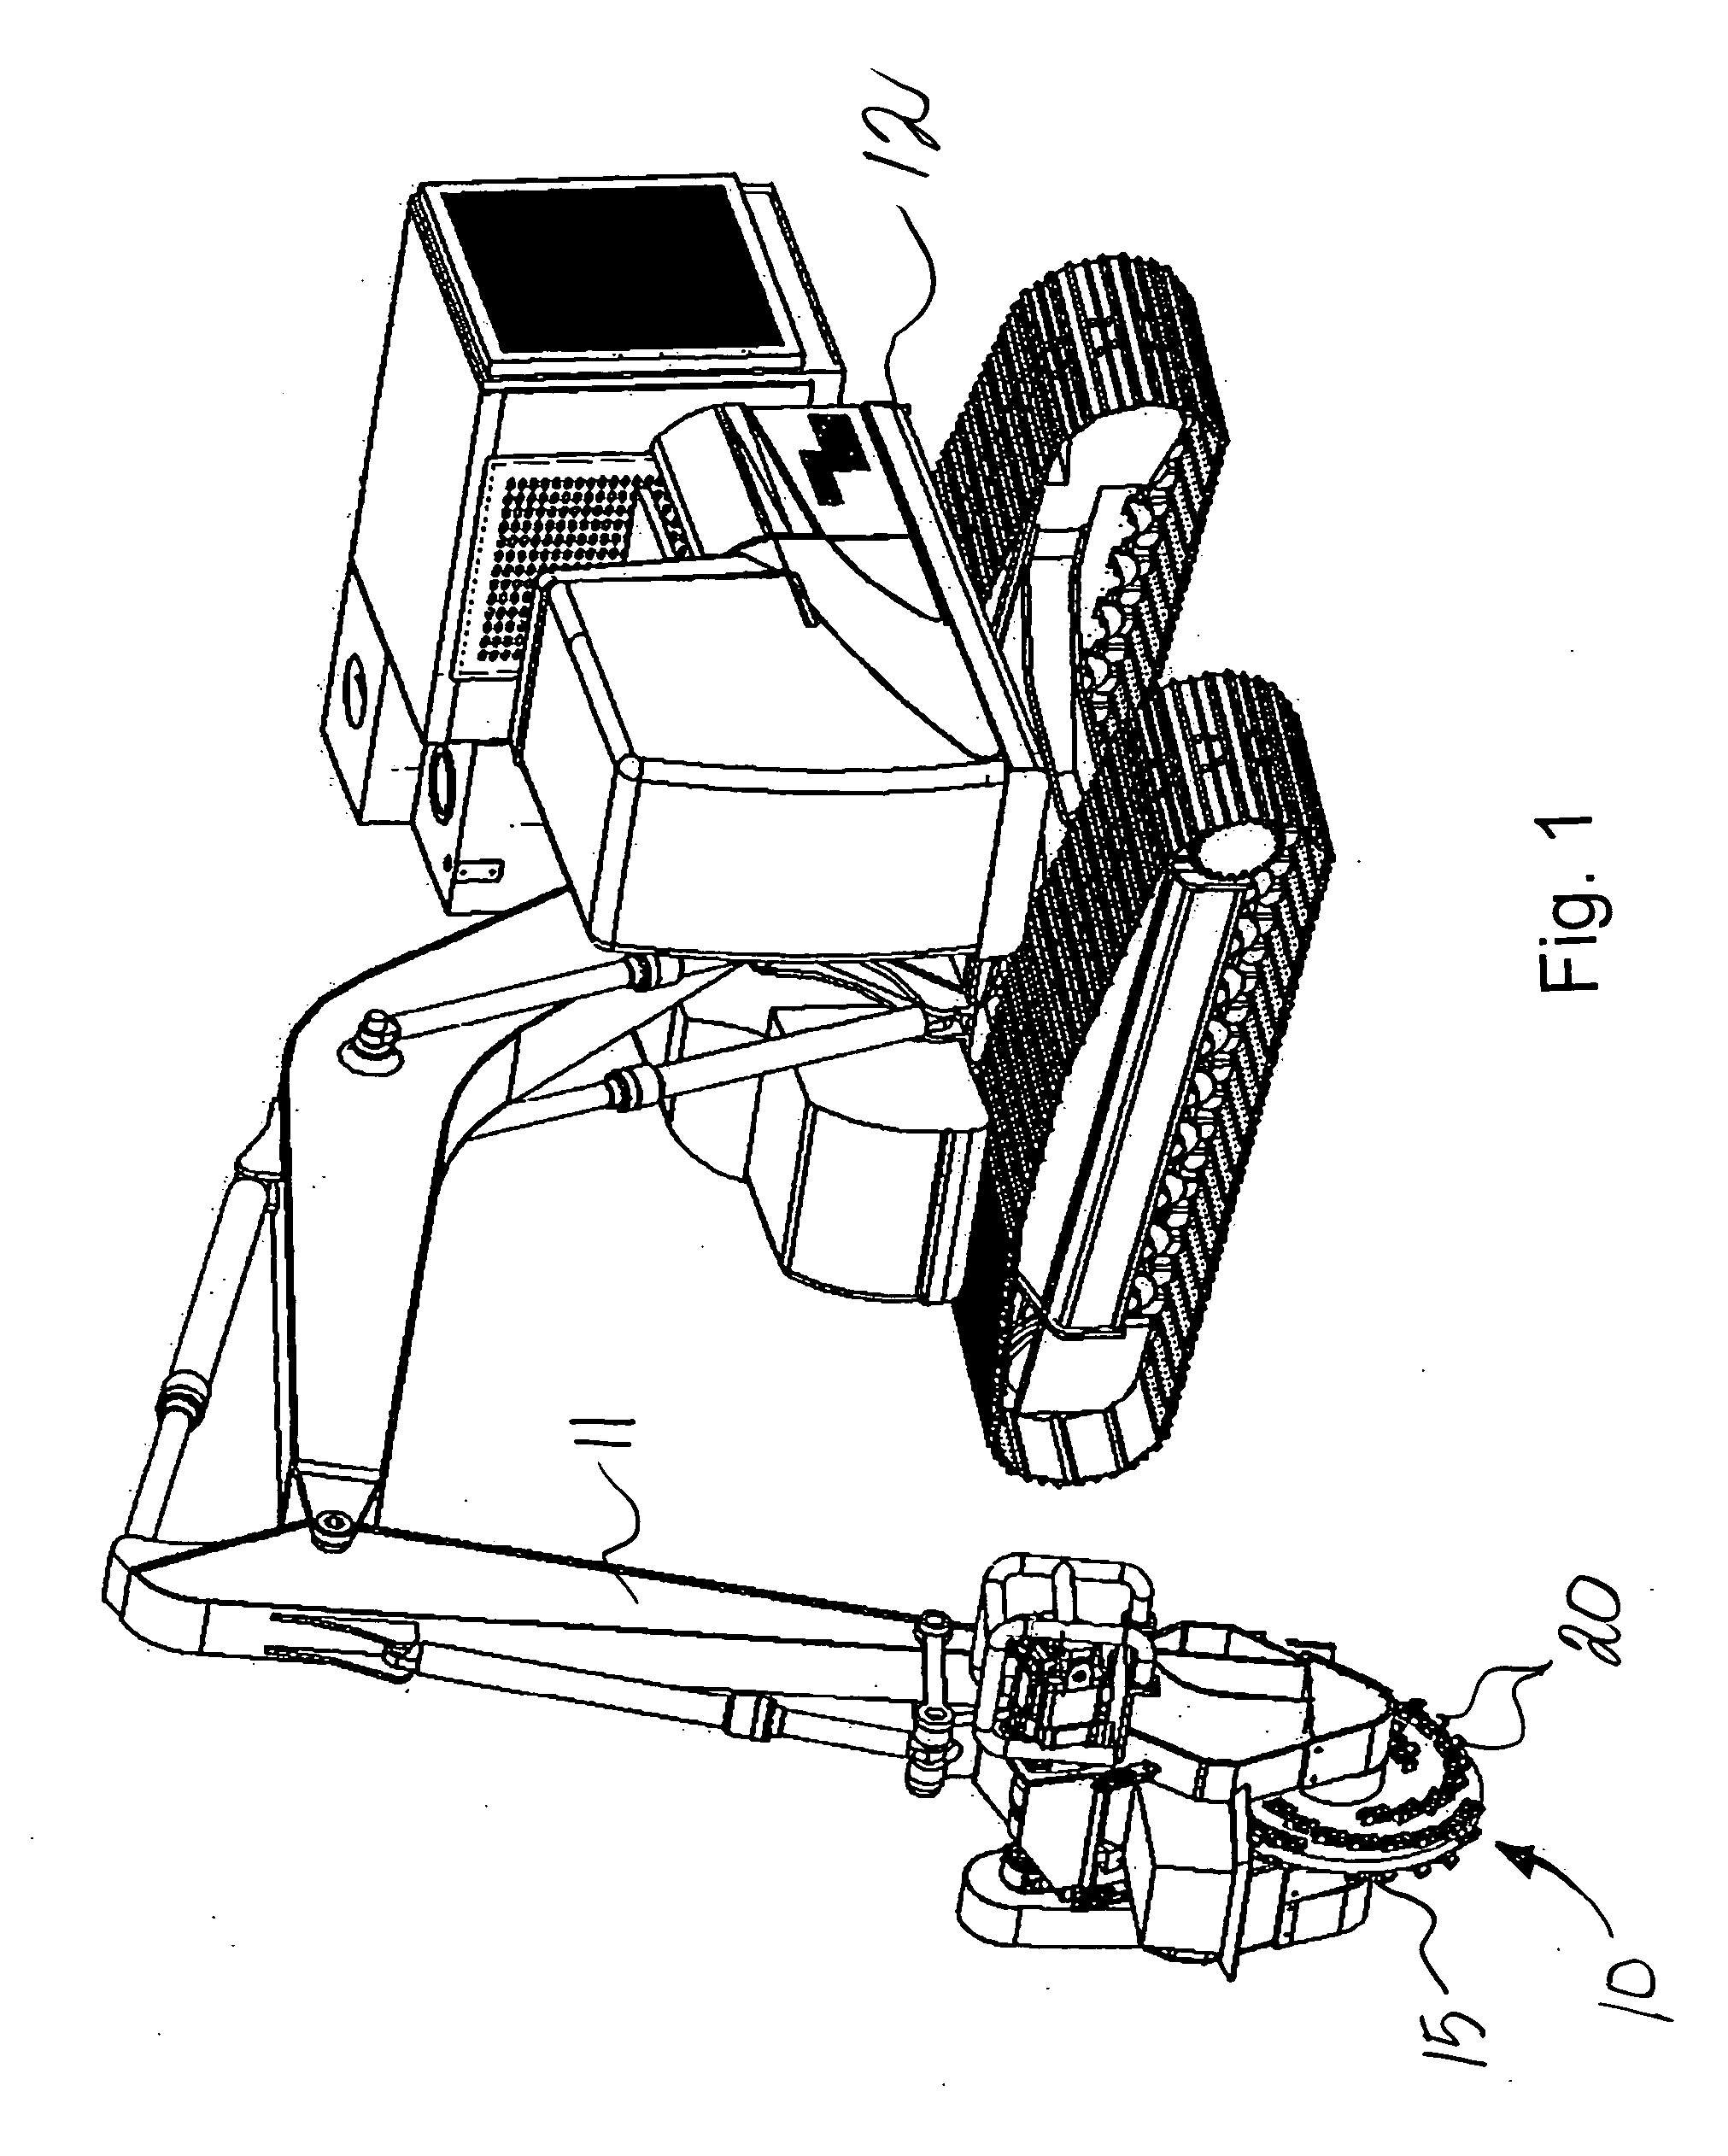 Patent Us20050166997 Stump Cutting Device With Load Distributing Vermeer 630A Grinder Parts Drawing